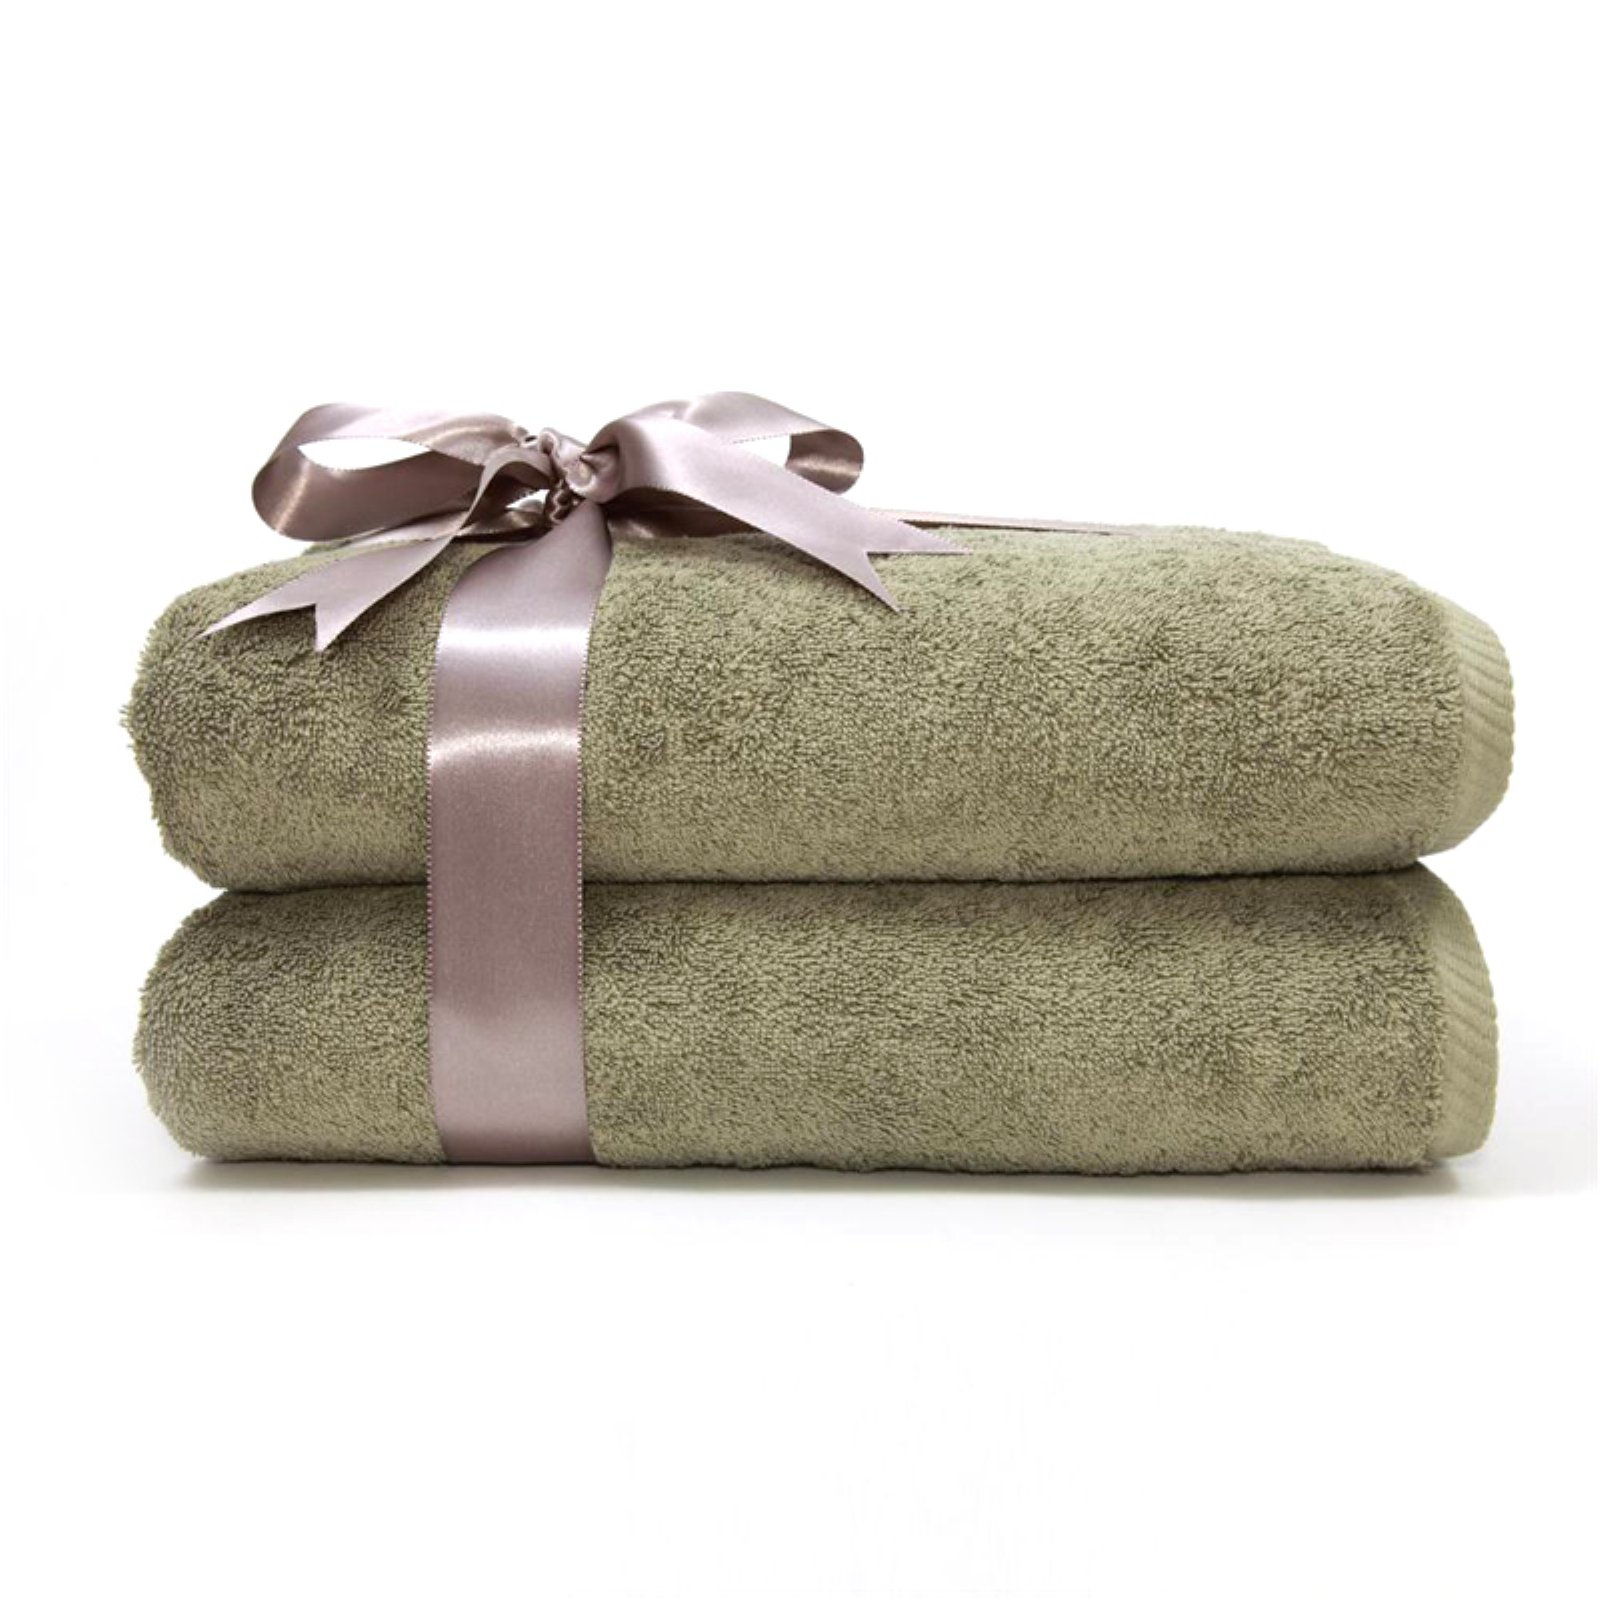 Luxury Hotel & Spa 100% Turkish Cotton Soft Twist Bath Towels Set of 2 by Linum Home Textiles